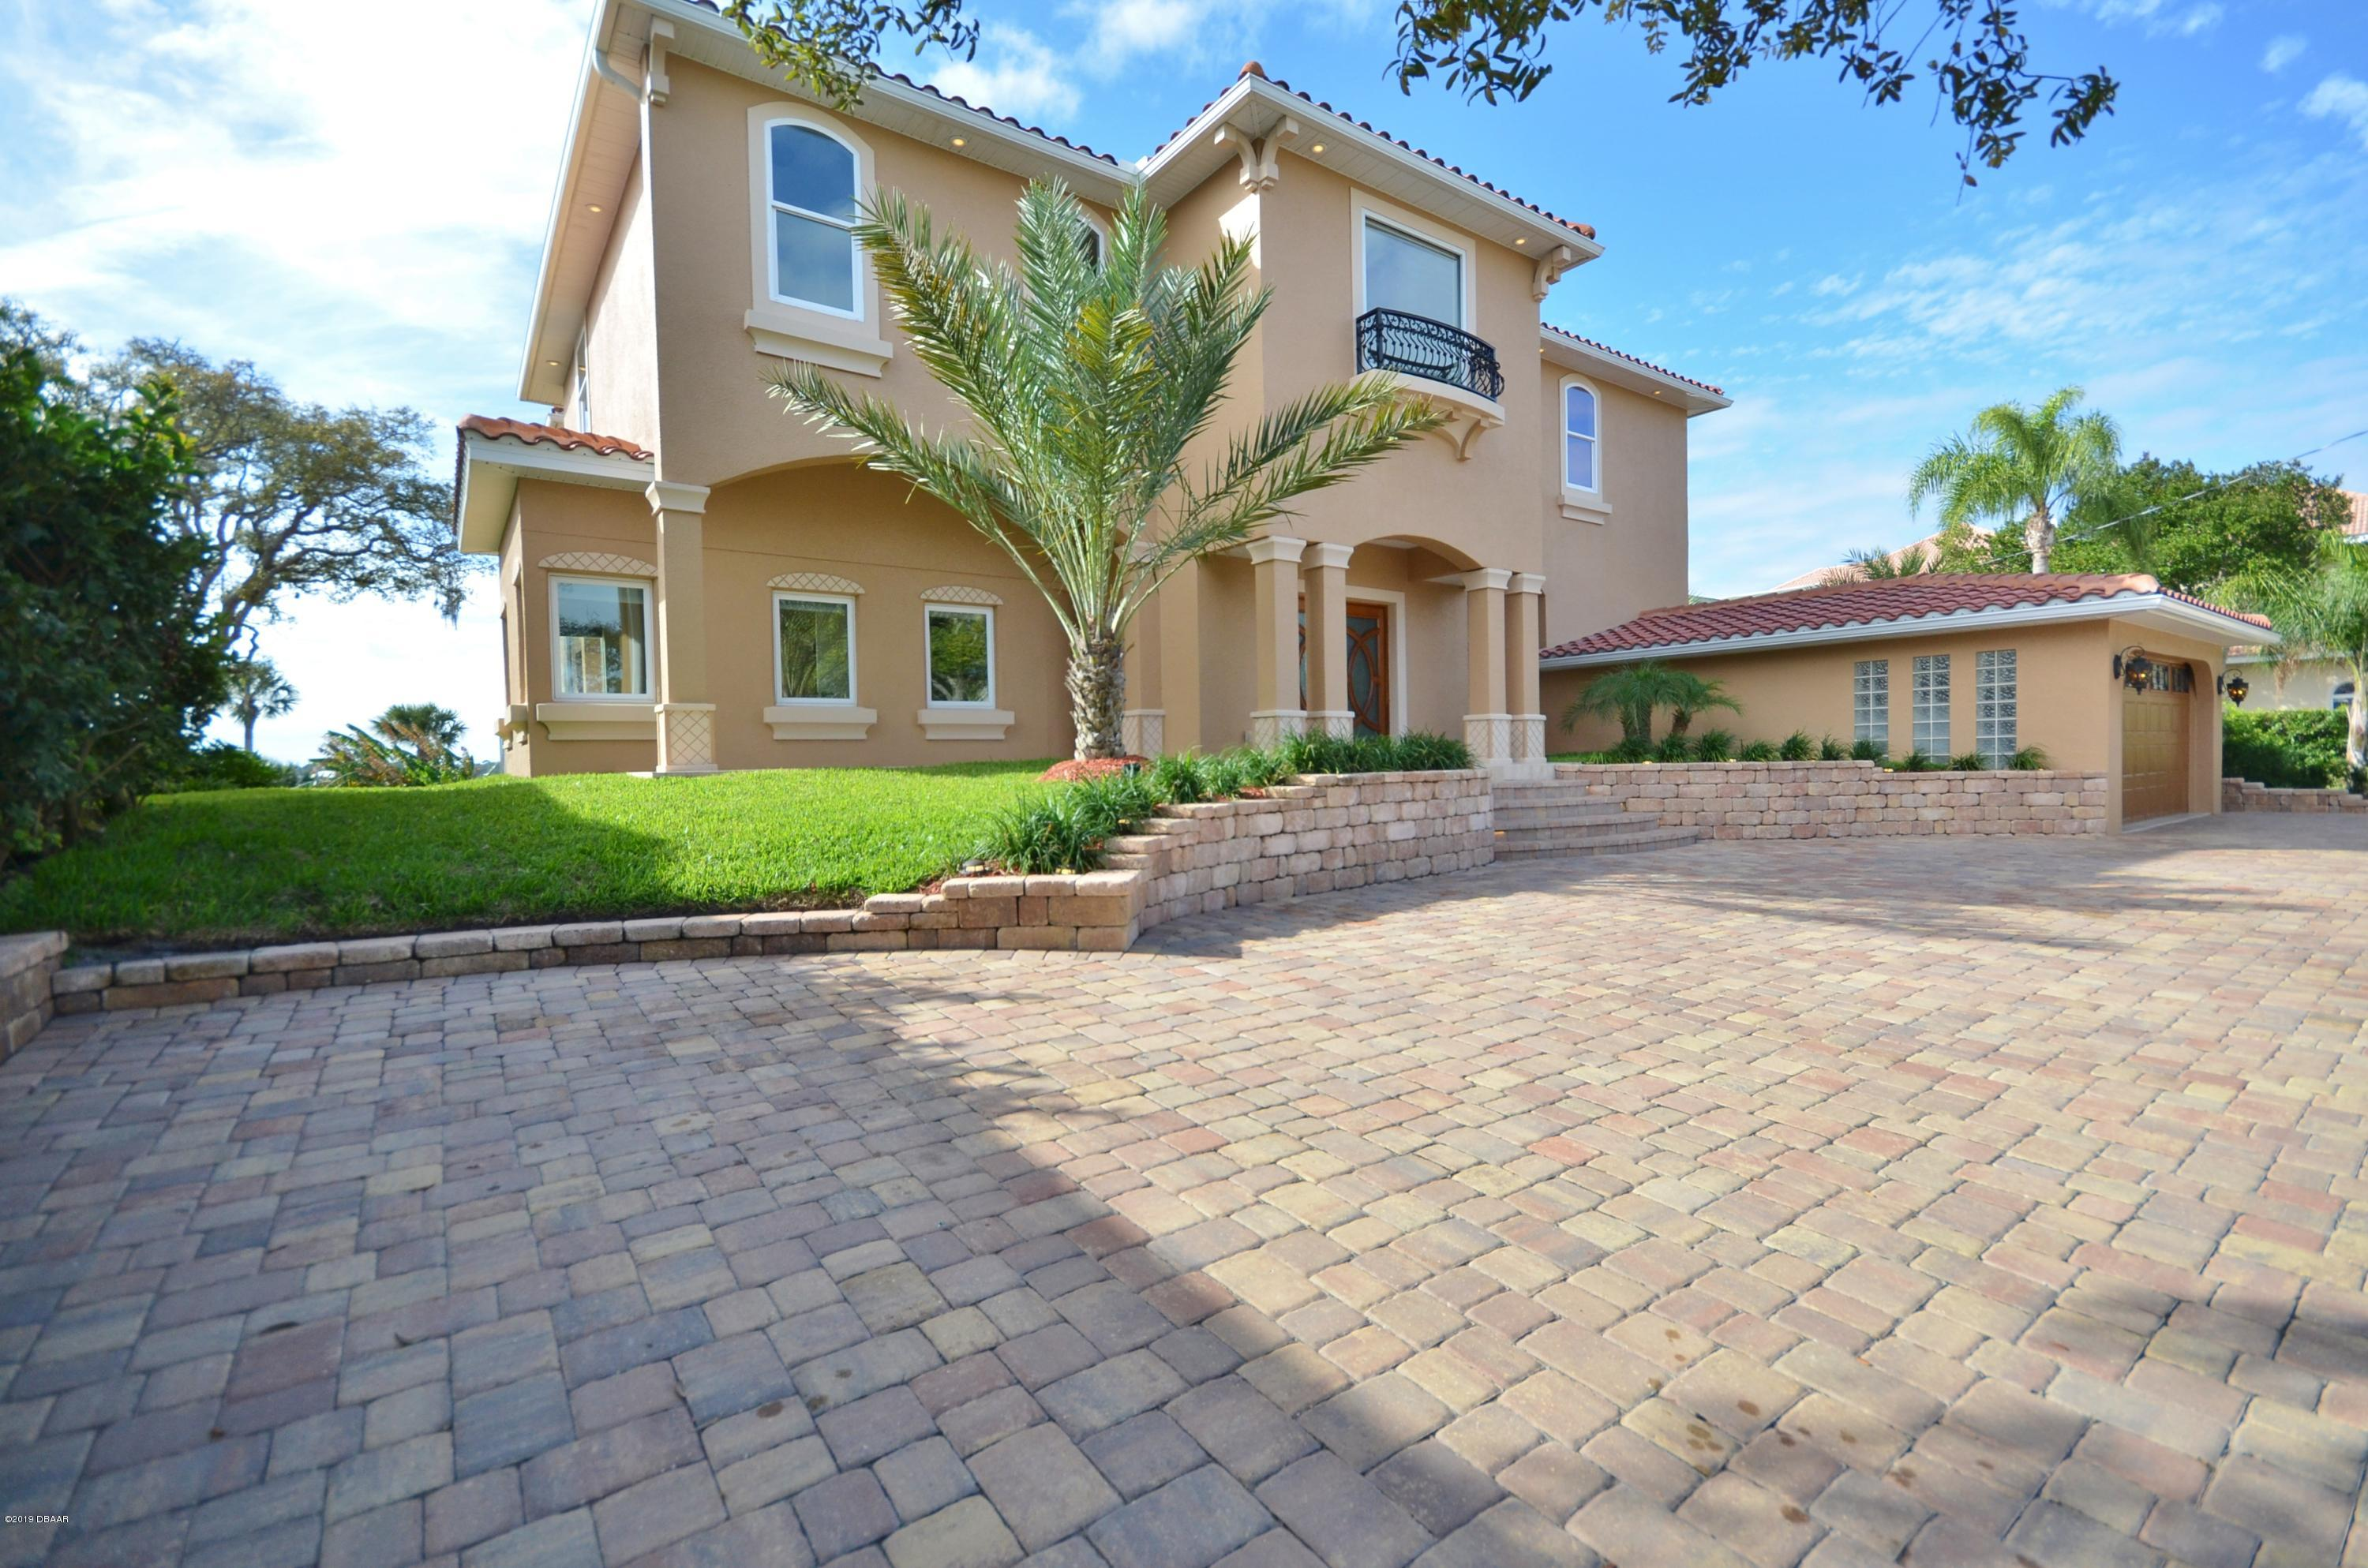 Photo of 8 Sunset Terrace, Daytona Beach, FL 32118